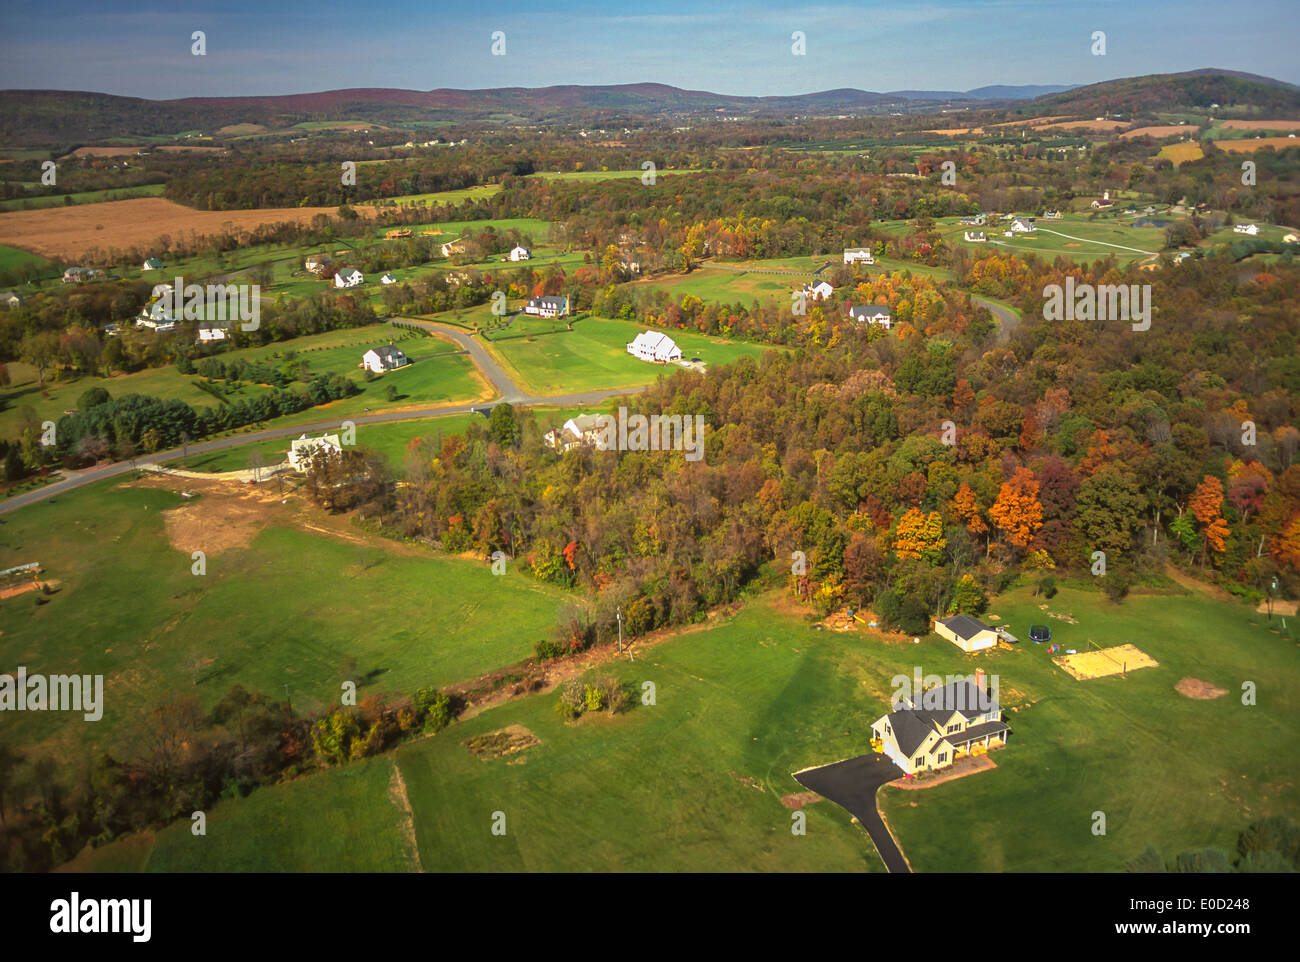 LOUDOUN COUNTY, VIRGINIA, USA - Aerial of homes on large plots of land near Blue Ridge Mountains.